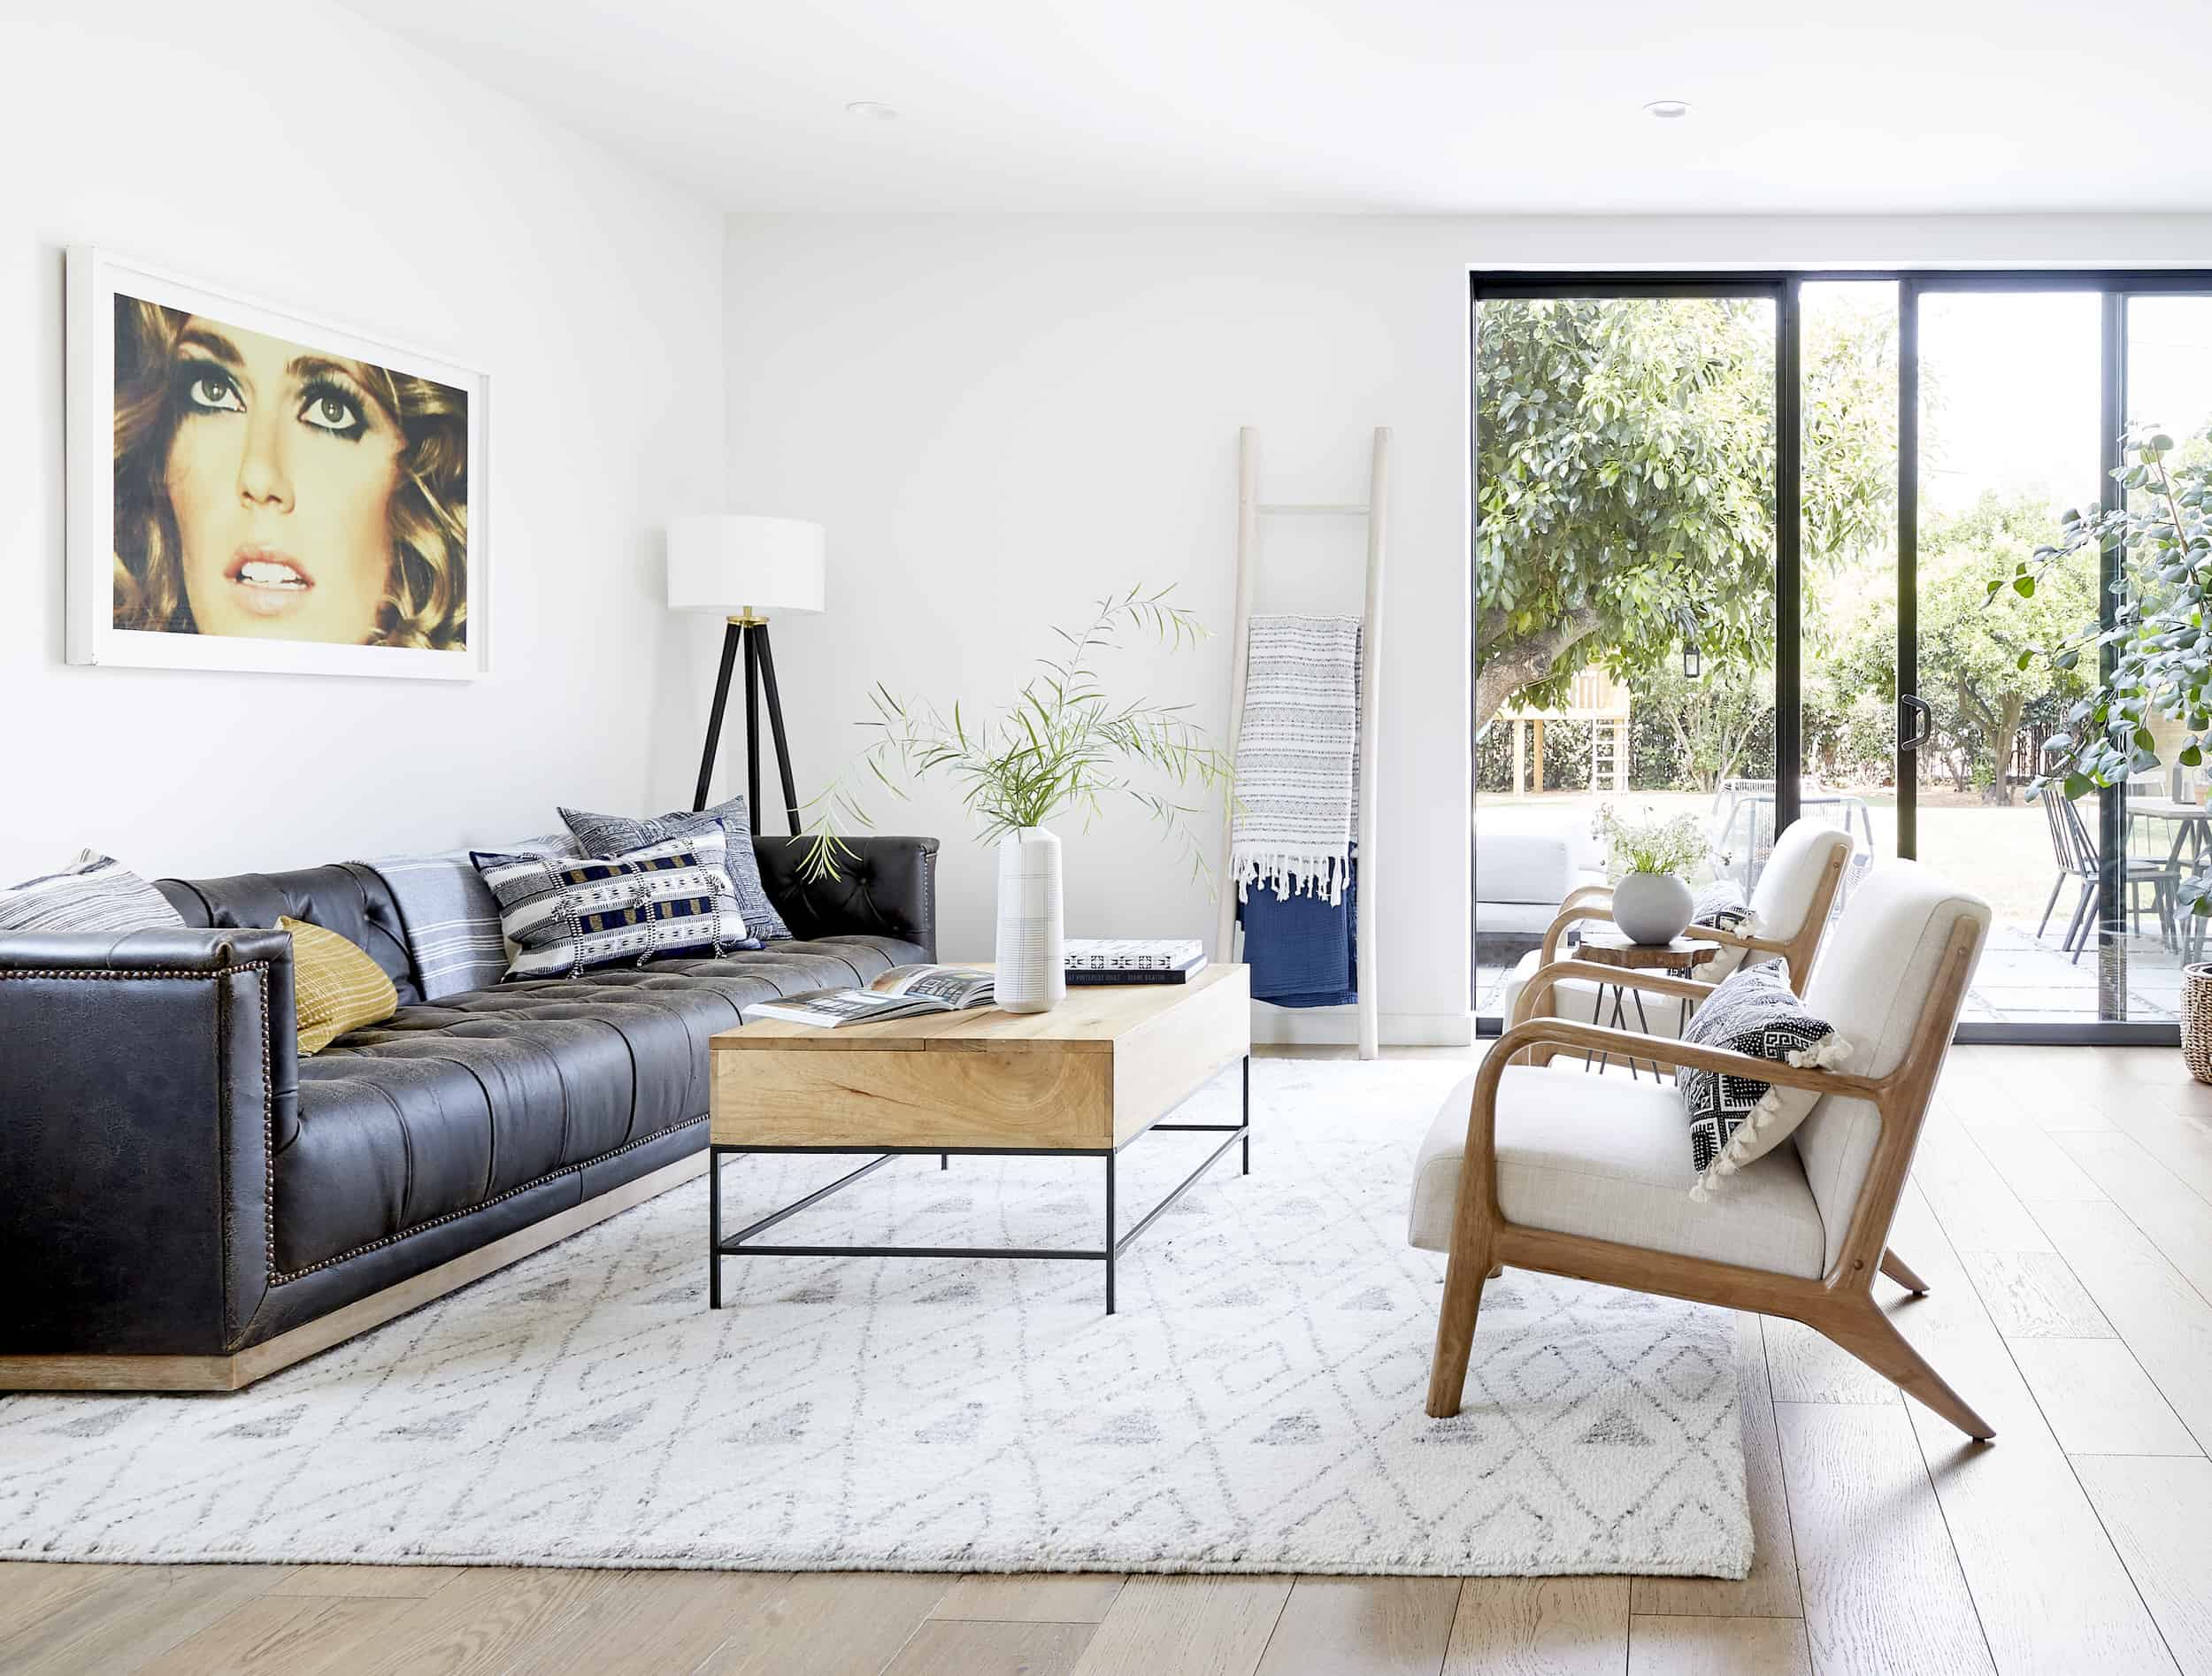 Target See It In Your Space Emily Henderson Bright Modern Living Room141